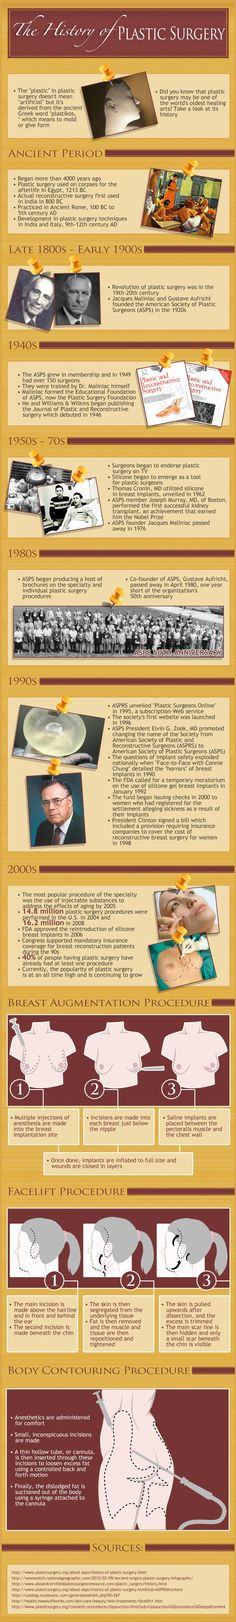 The History of Plastic Surgery [INFOGRAPHIC] | San Diego Plastic Surgery Clinic